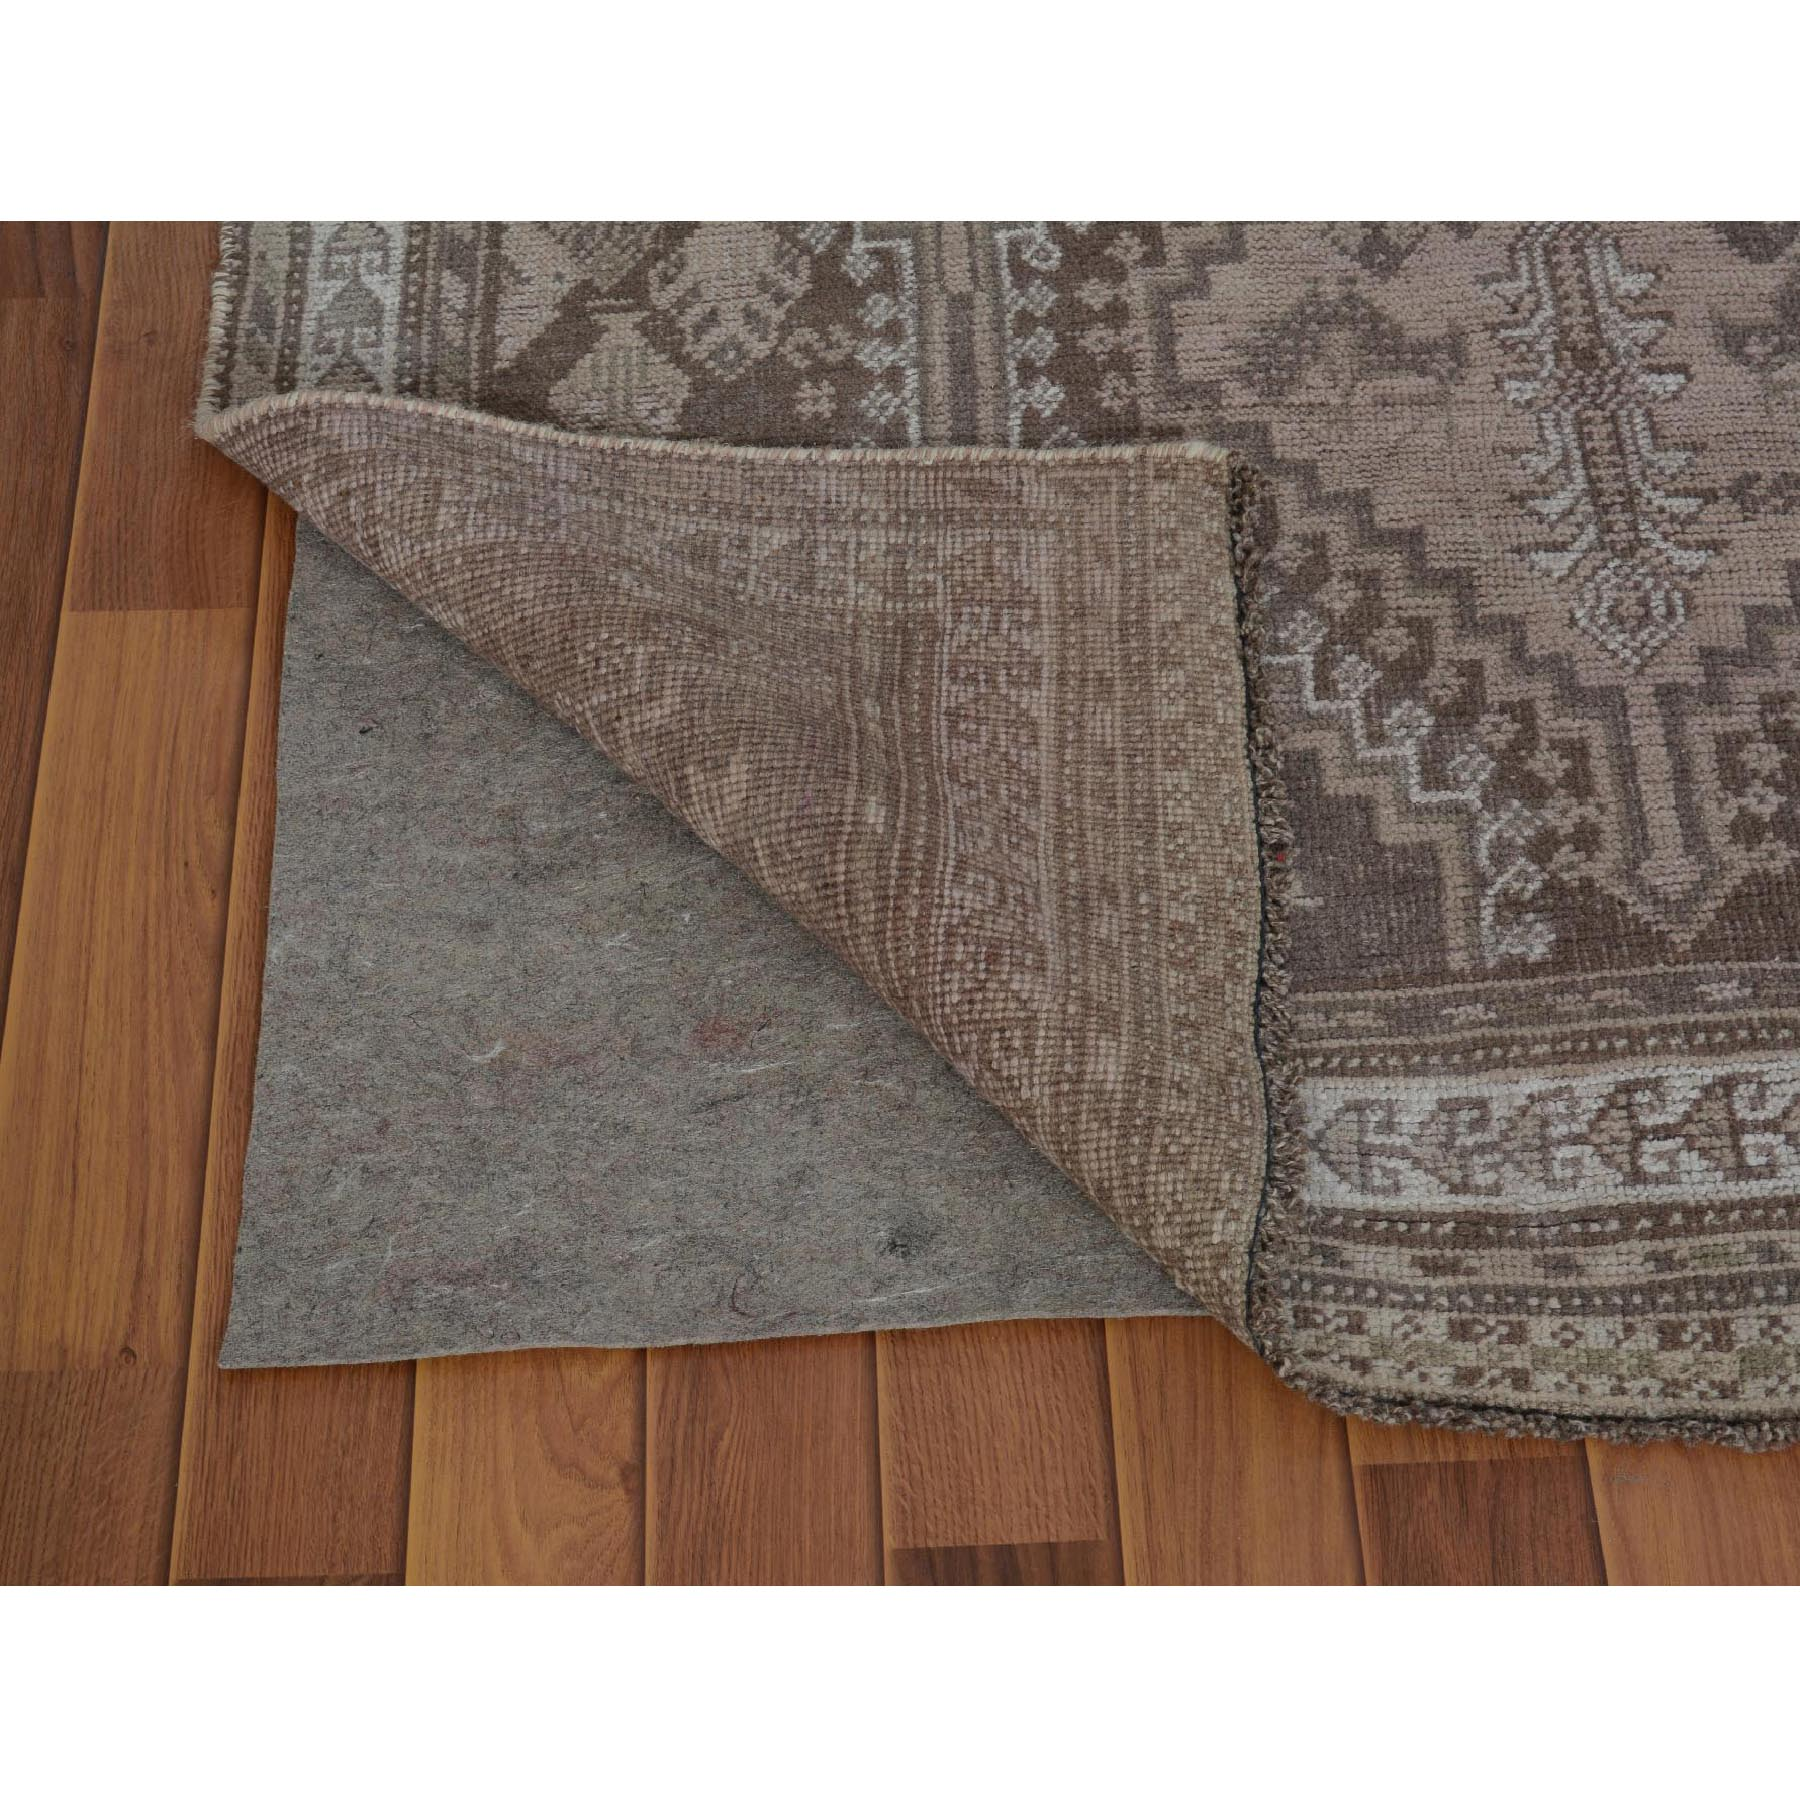 4-9 x8-6  Earth Tone Colors Vintage And Worn Down Persian Qashqai Pure Wool Hand Knotted Oriental Rug